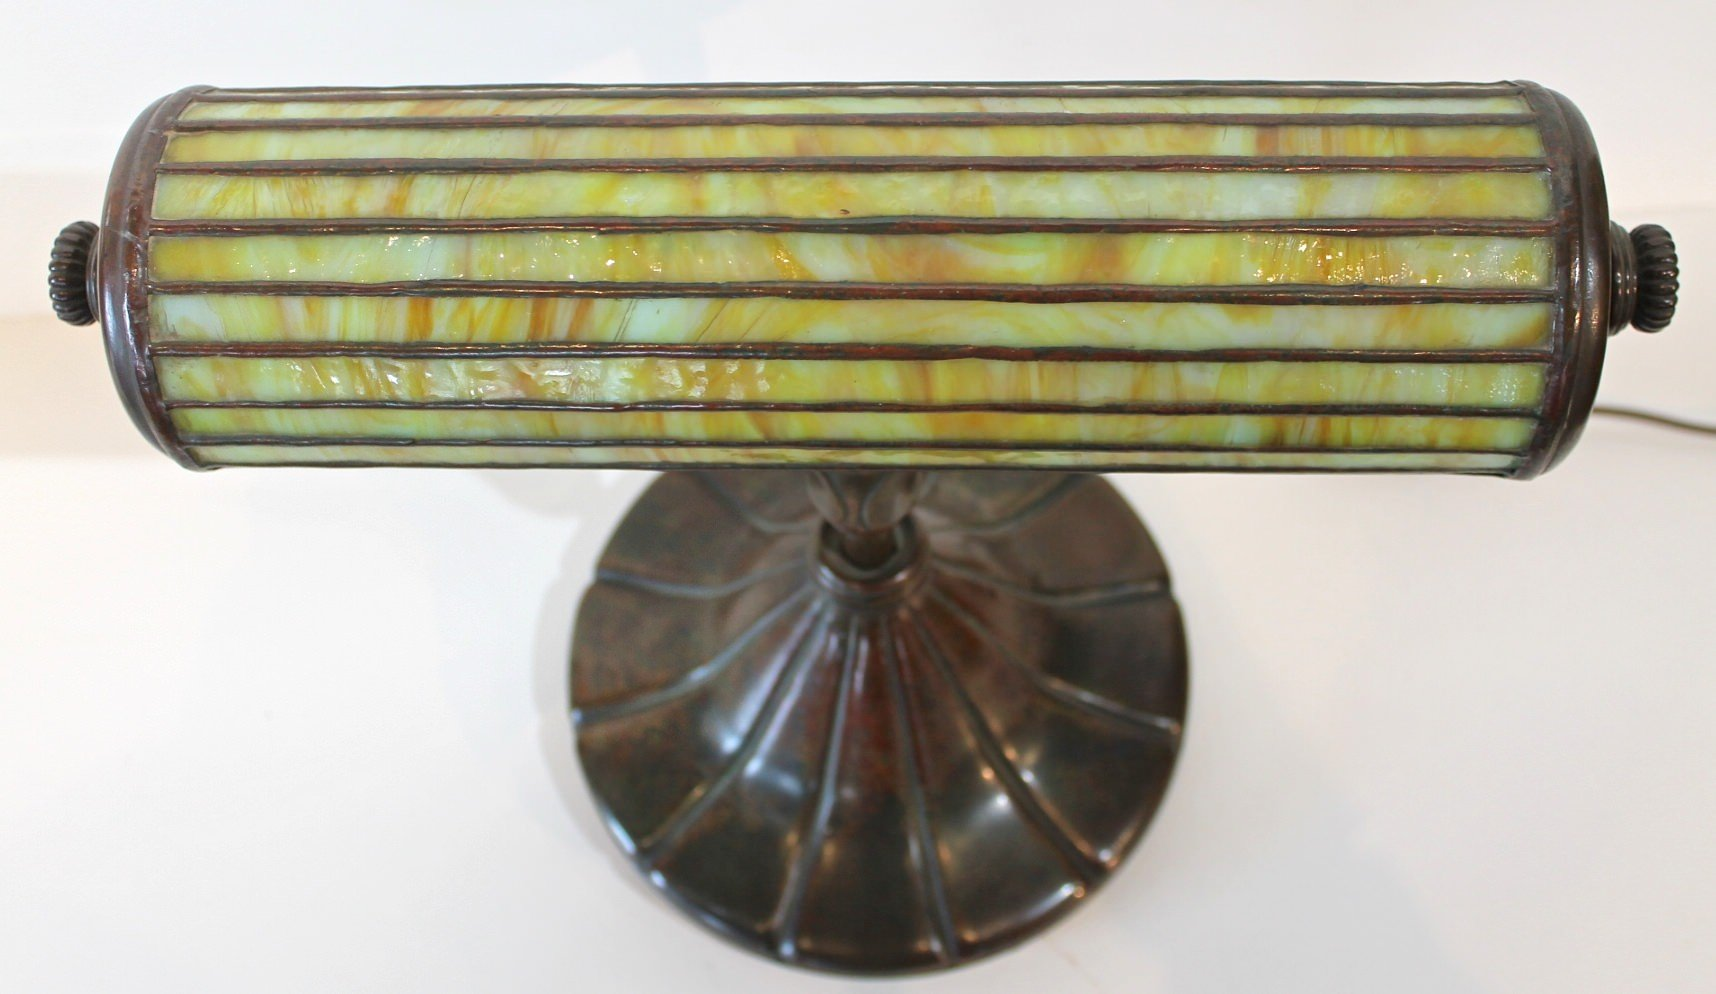 Rare Tiffany Studios Bronze and Leaded Glass Desk Lamp by Tiffany Studios